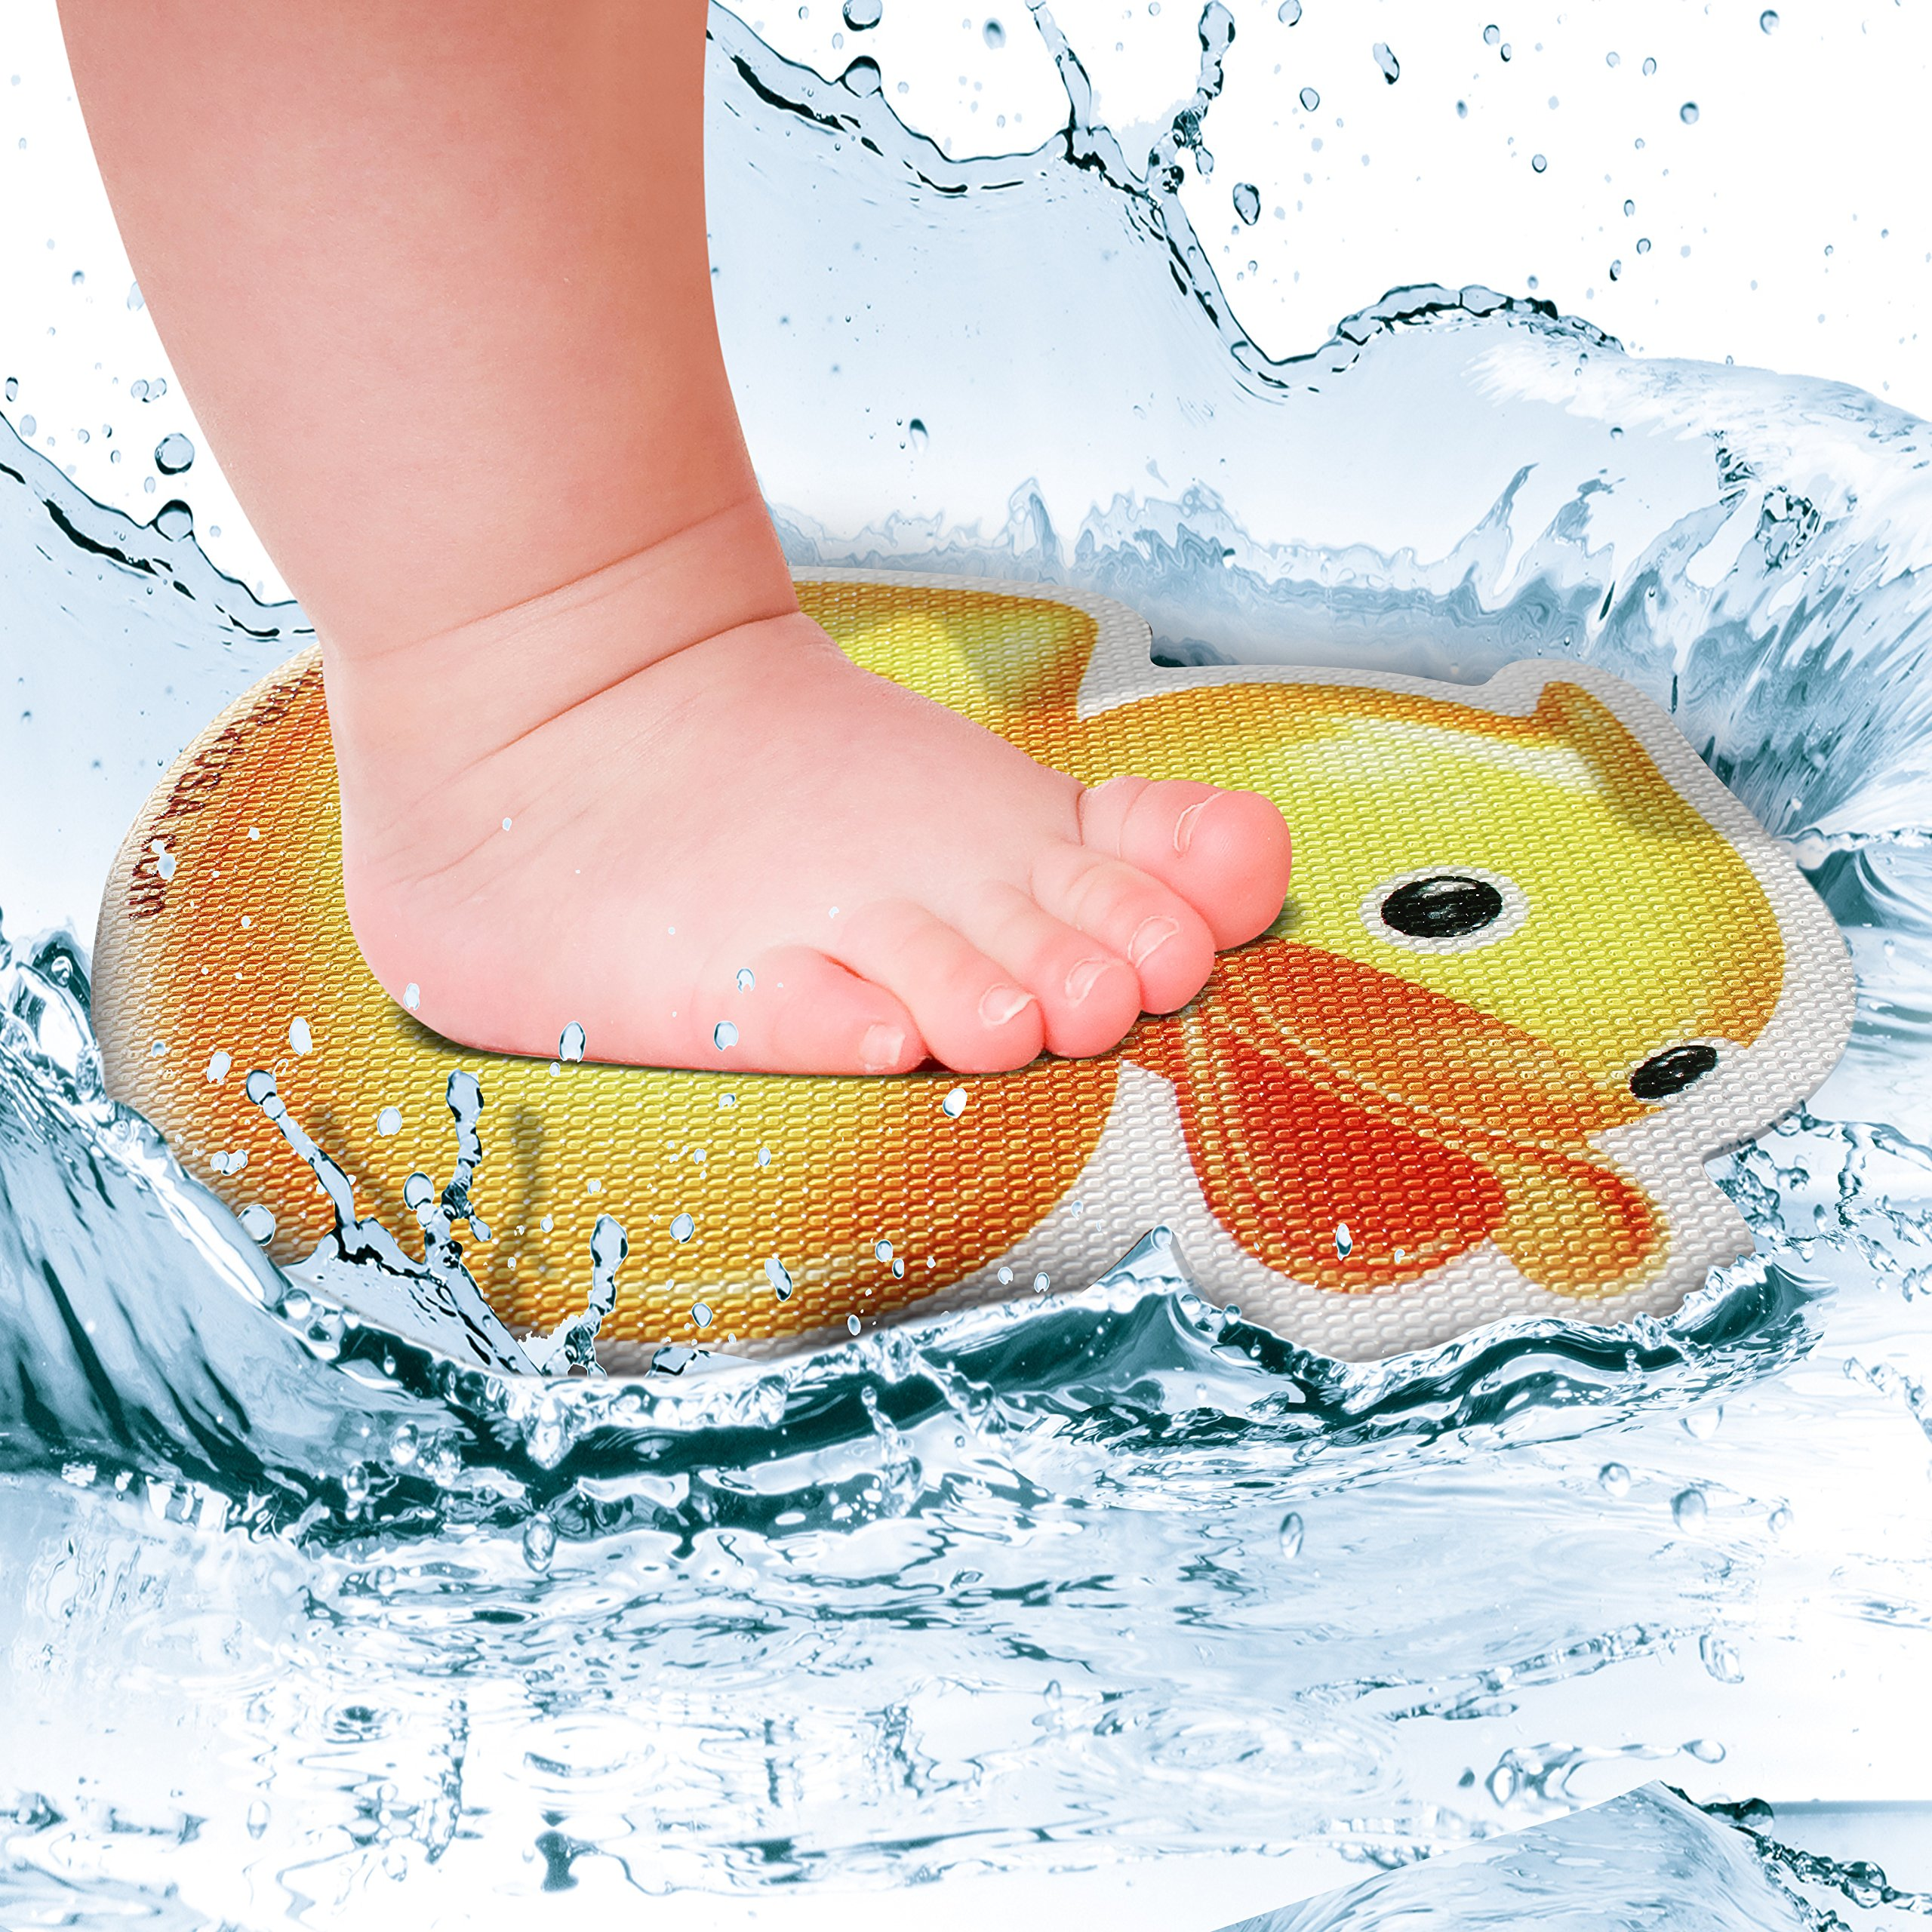 SlipRx USA Nonslip Bathtub Or Shower Stickers Safety Adhesive Duck | Non-Toxic, Anti-Bacterial, Mold and Mildew Resistant, Antislip Surface Area-6'' Diameter Mat | Rubber Ducky